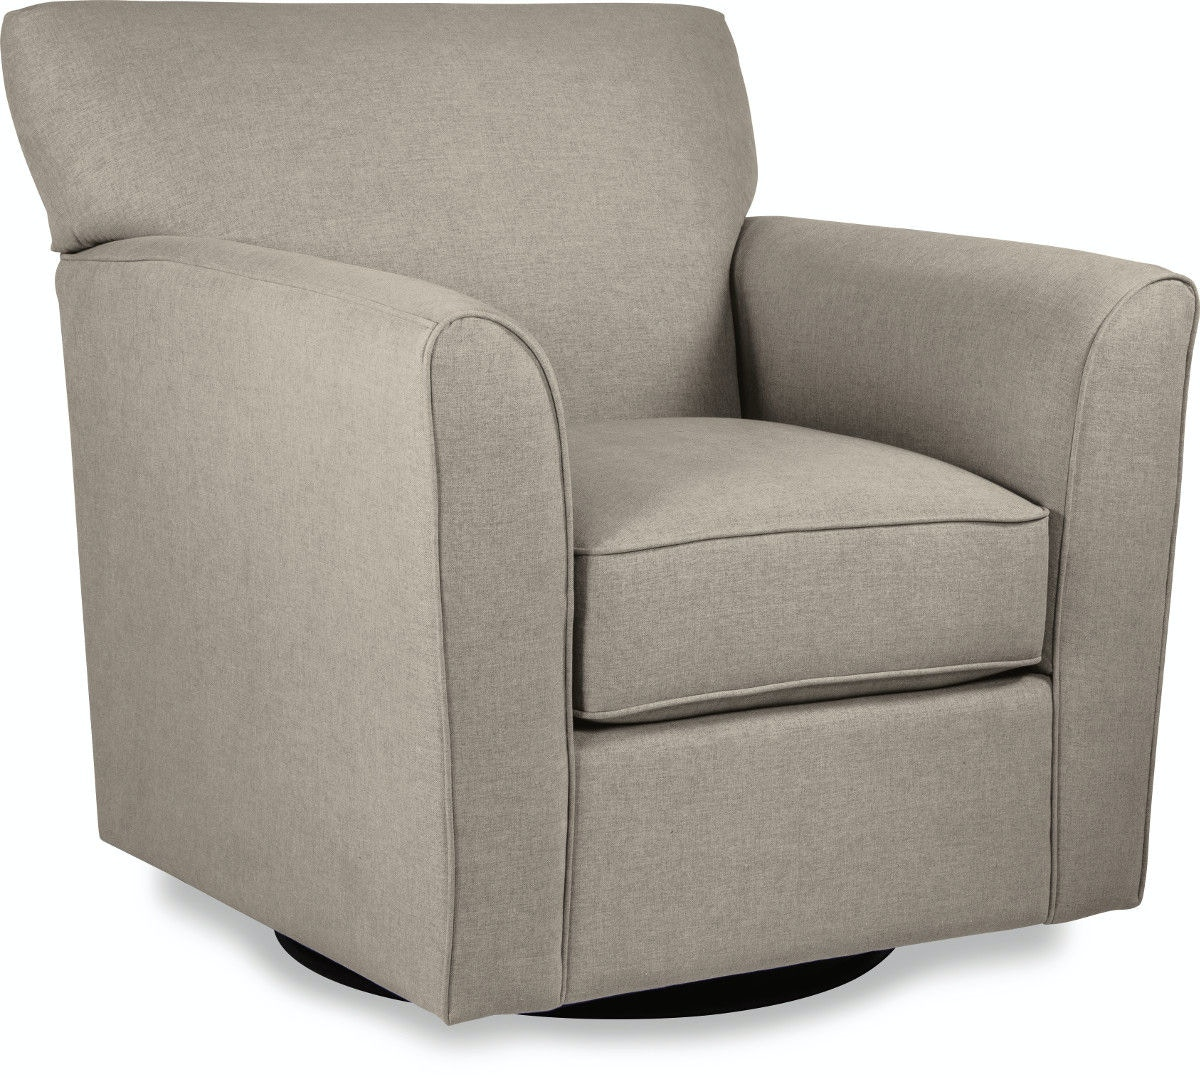 La-Z-Boy® Premier Swivel Occasional Chair 215401  sc 1 st  Evans Furniture Galleries : occasional chairs swivel - Cheerinfomania.Com